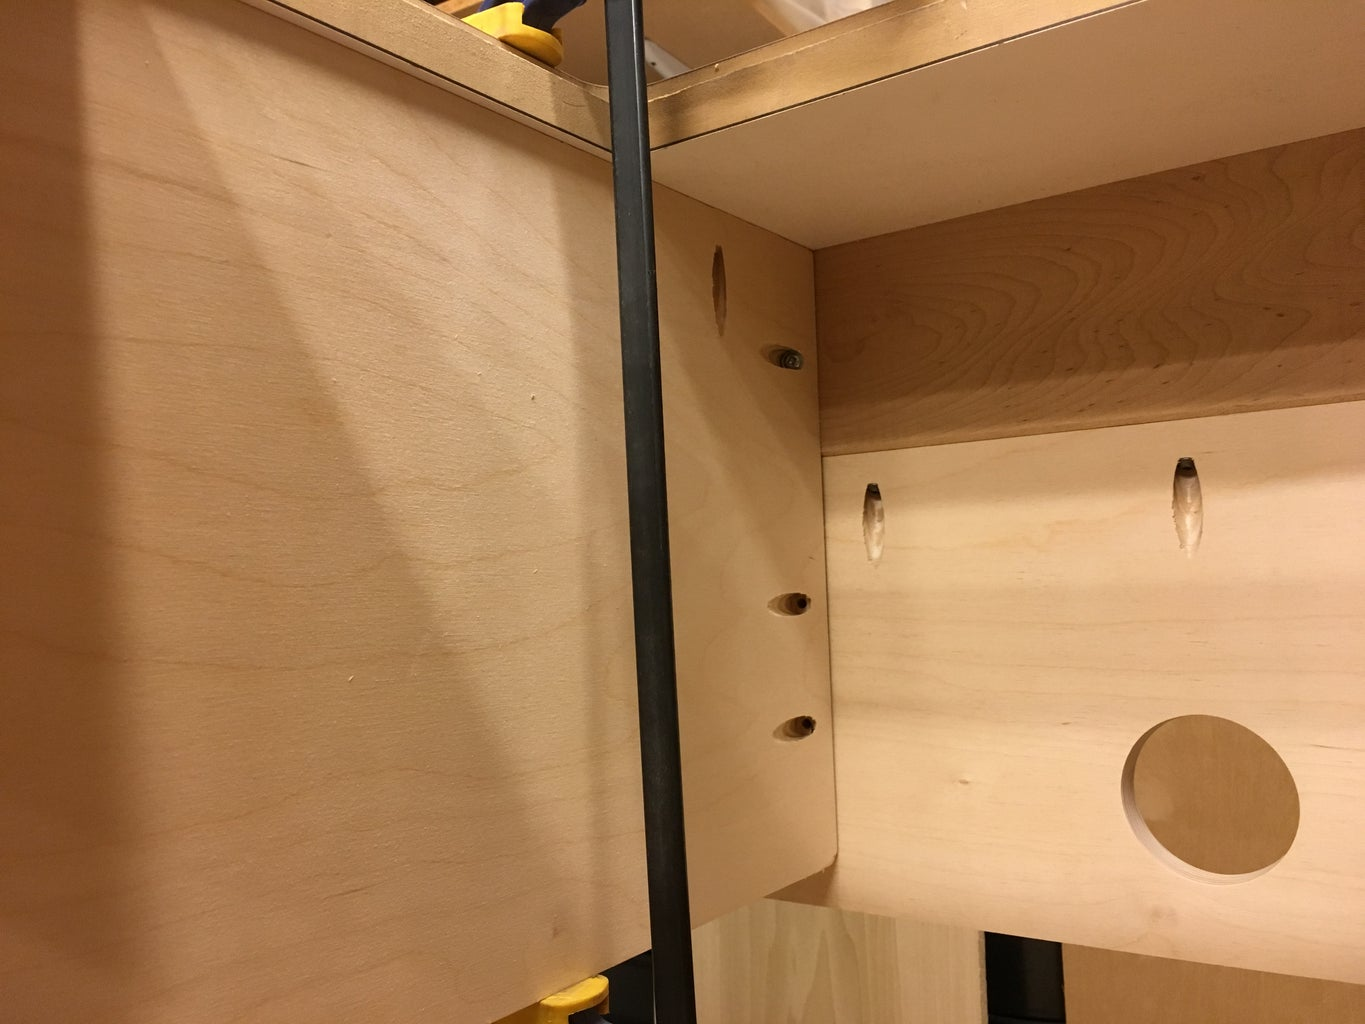 Cut and Install Dividers